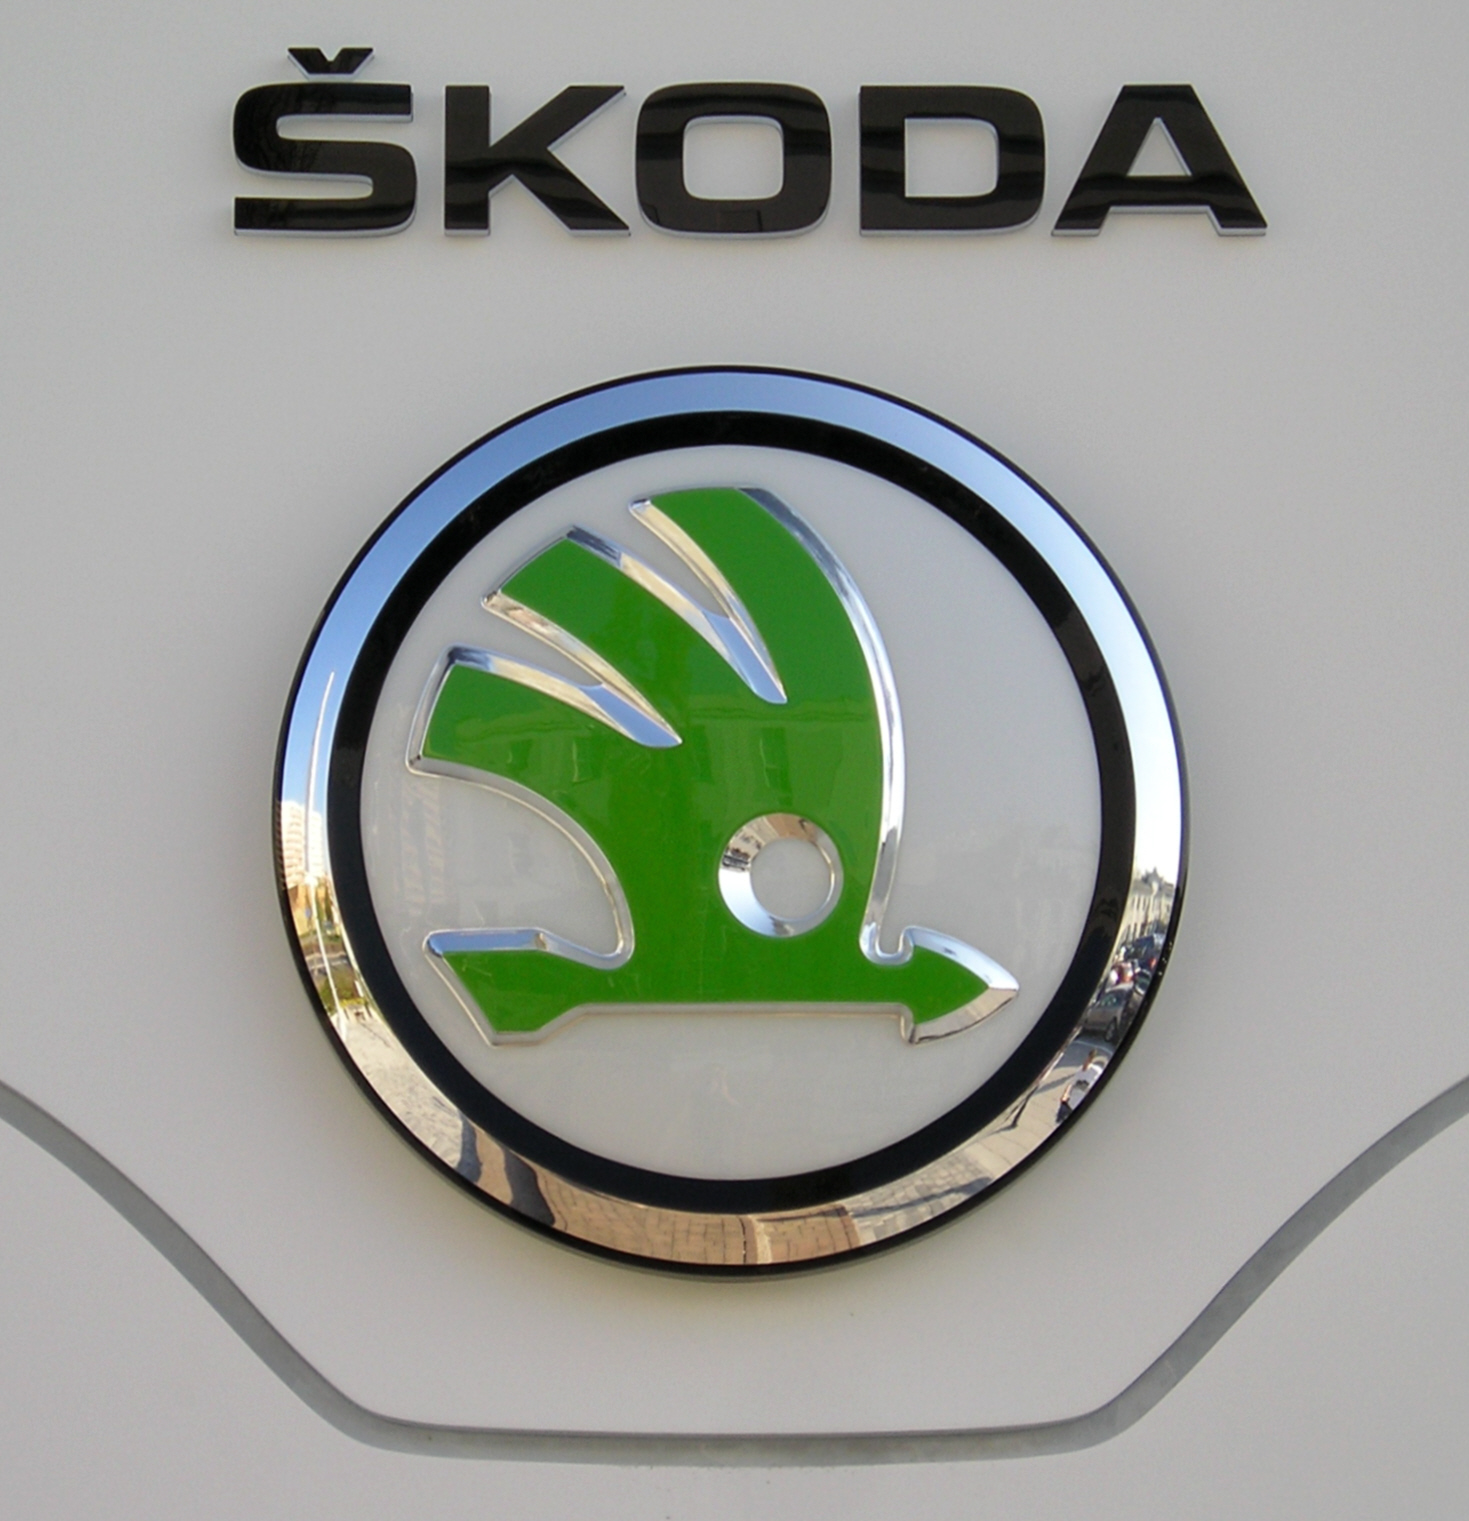 Symbols Of Cars And Names >> Škoda Logo, Škoda Car Symbol Meaning and History | Car Brand Names.com